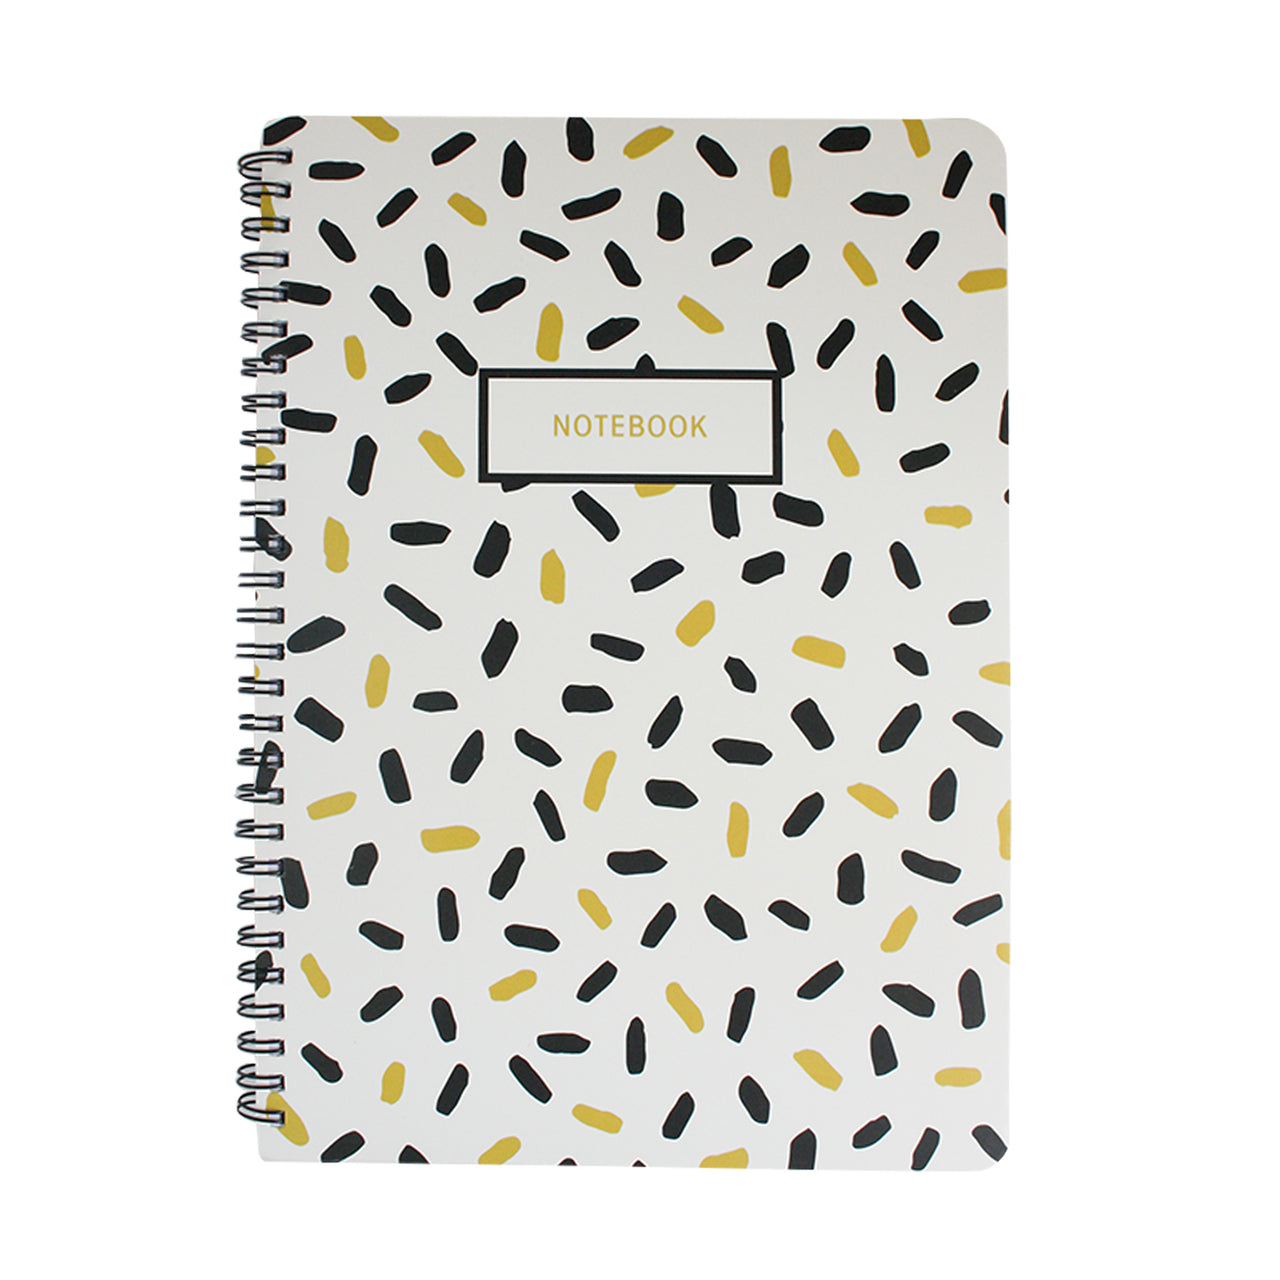 B5 Black & Gold Doodle Notebook - Dashes